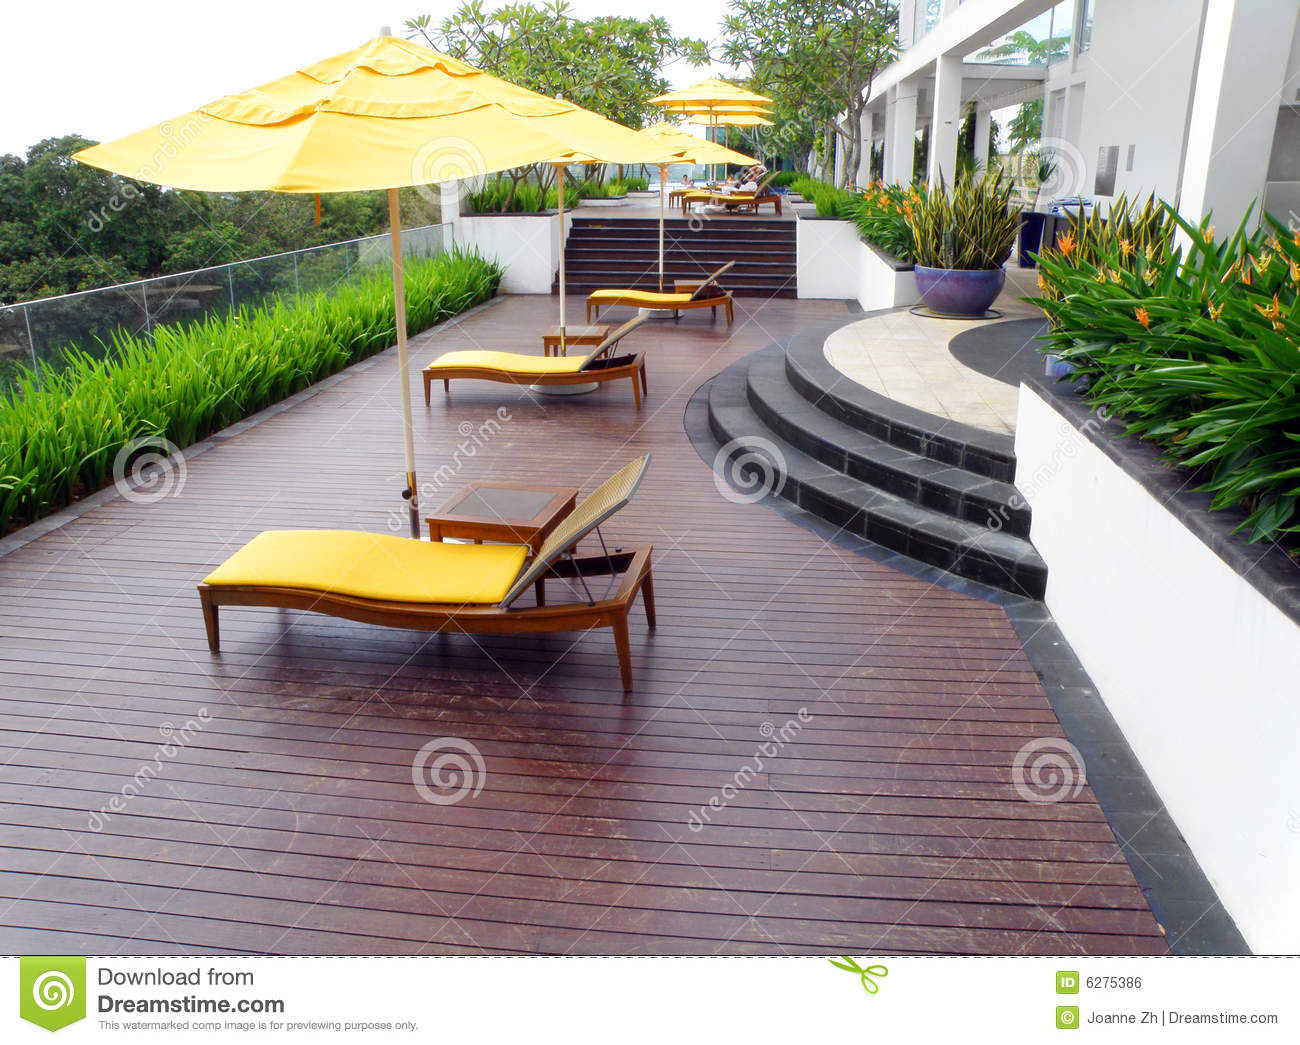 Roof Top Garden Design Royalty Free Stock Image - Image: 6275386